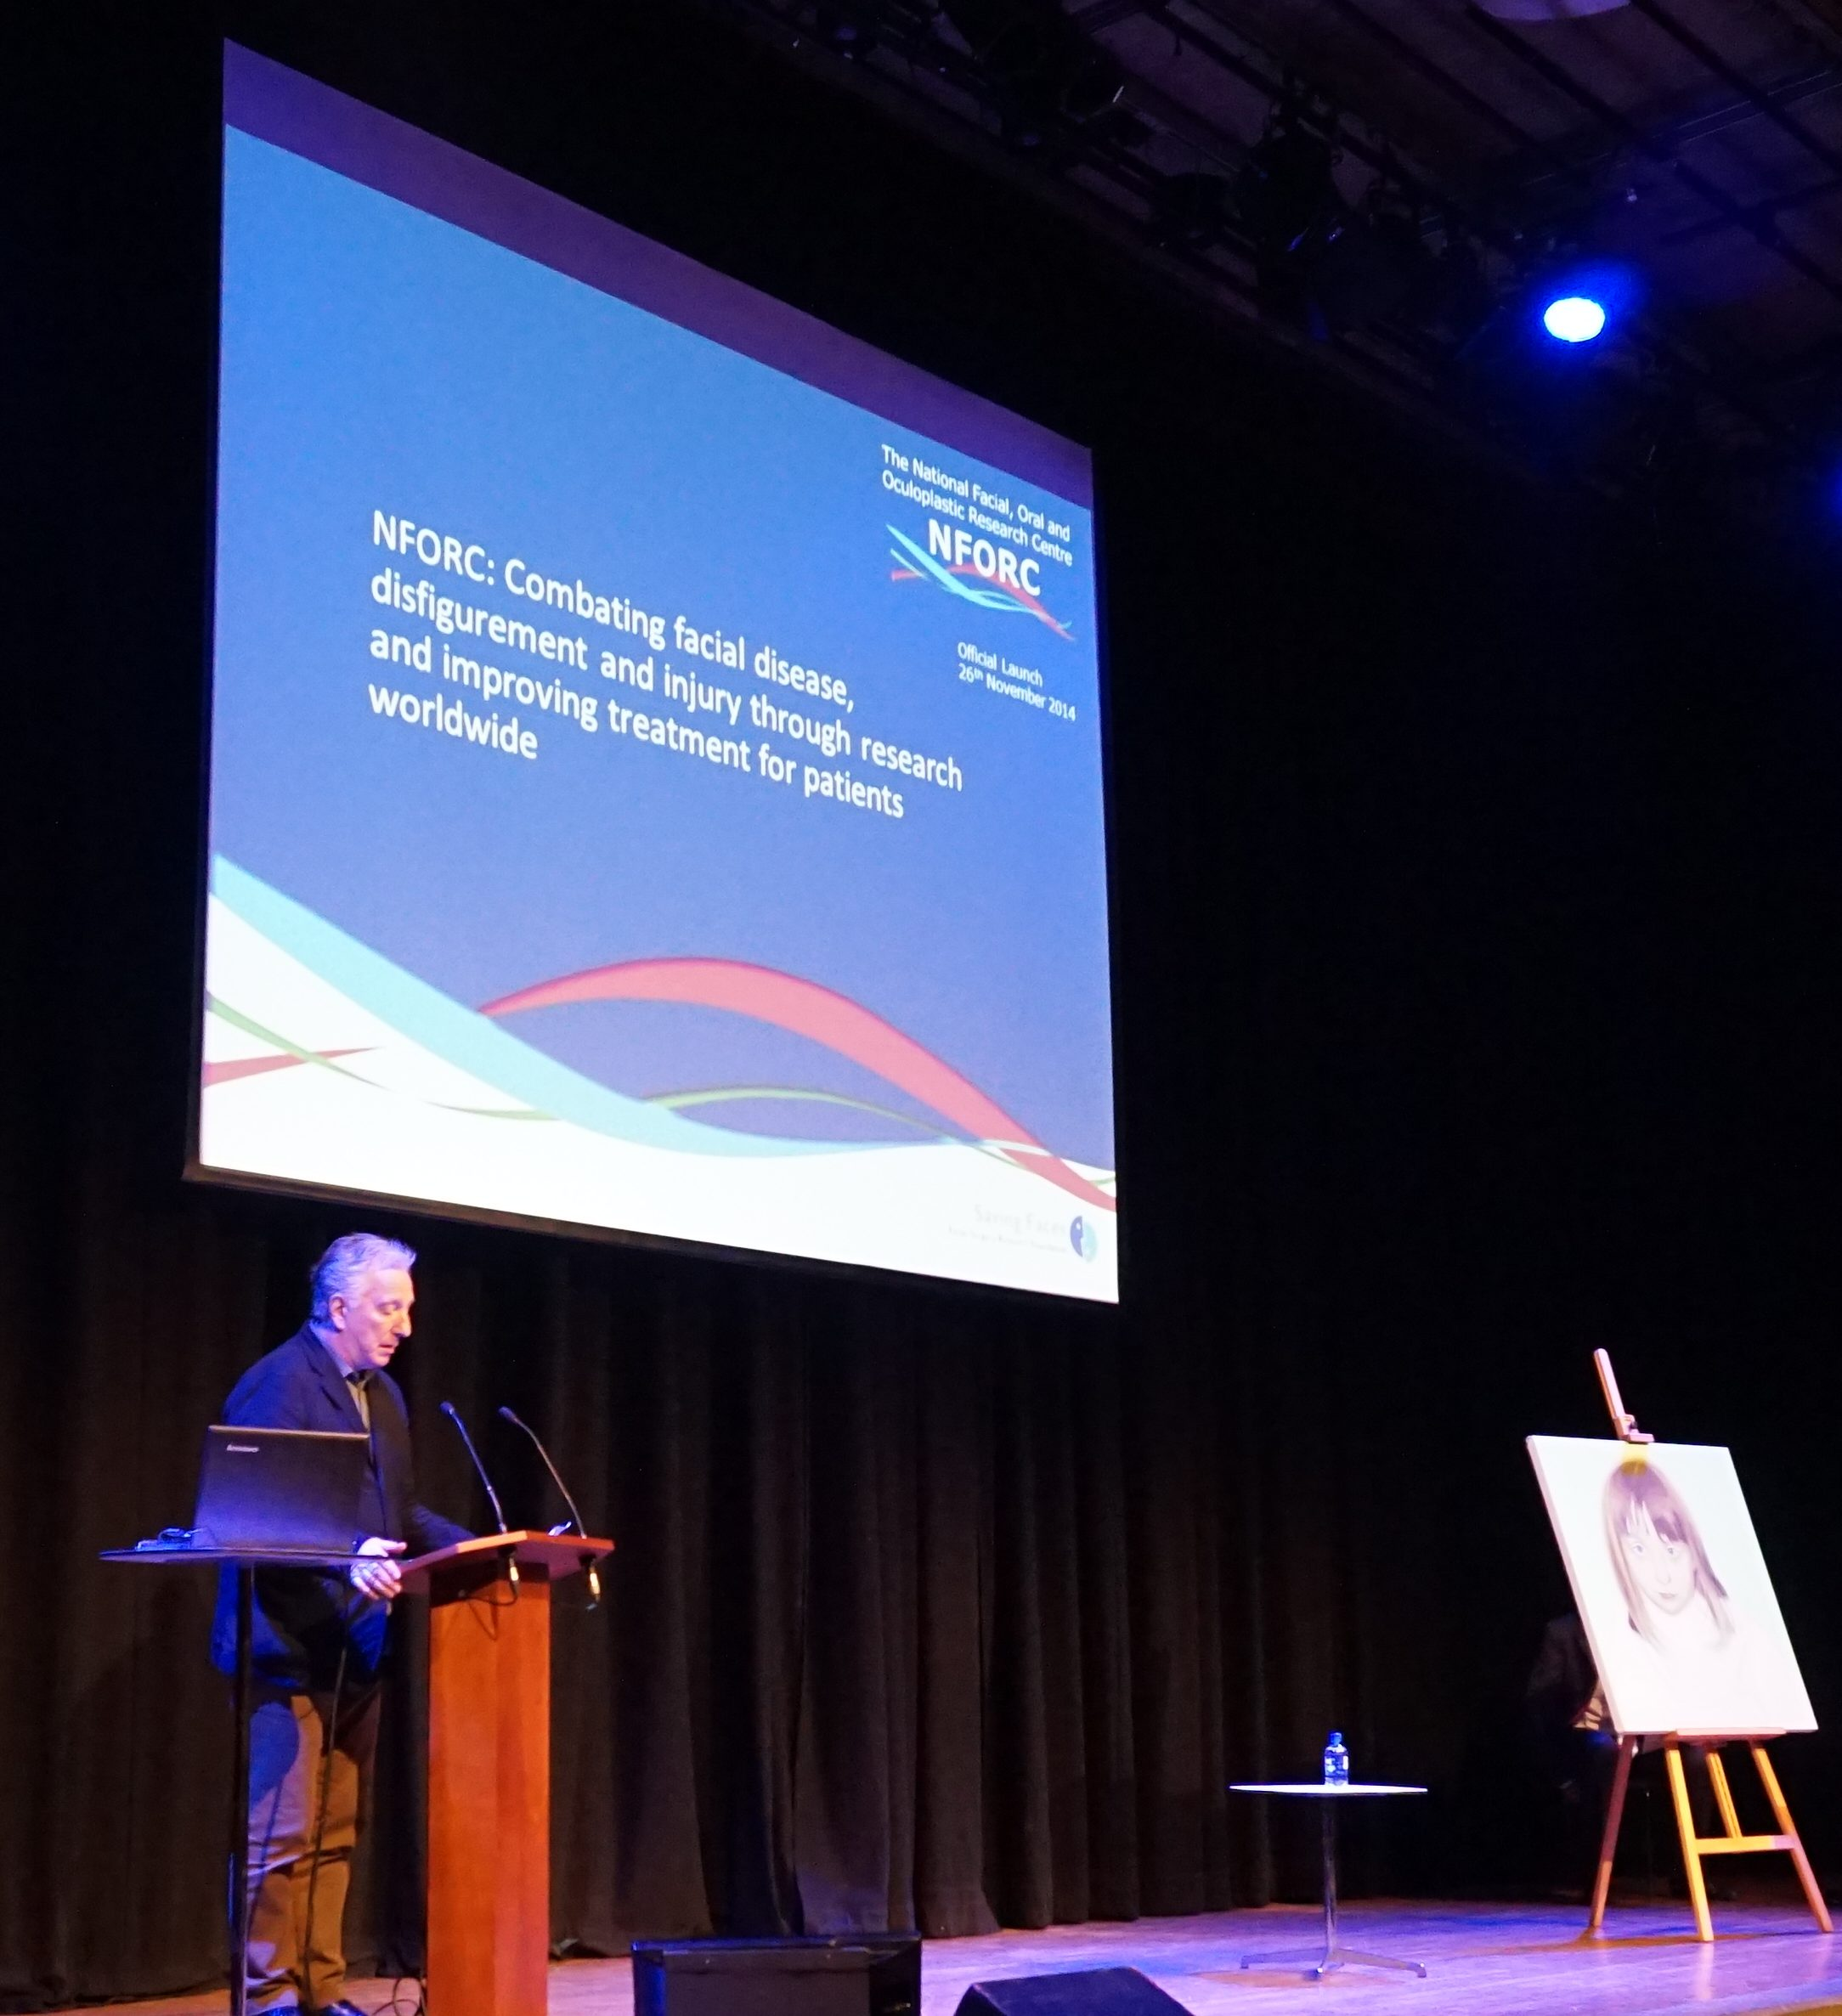 The late beloved patron Alan Rickman, opened the NFORC launch event in November 2014